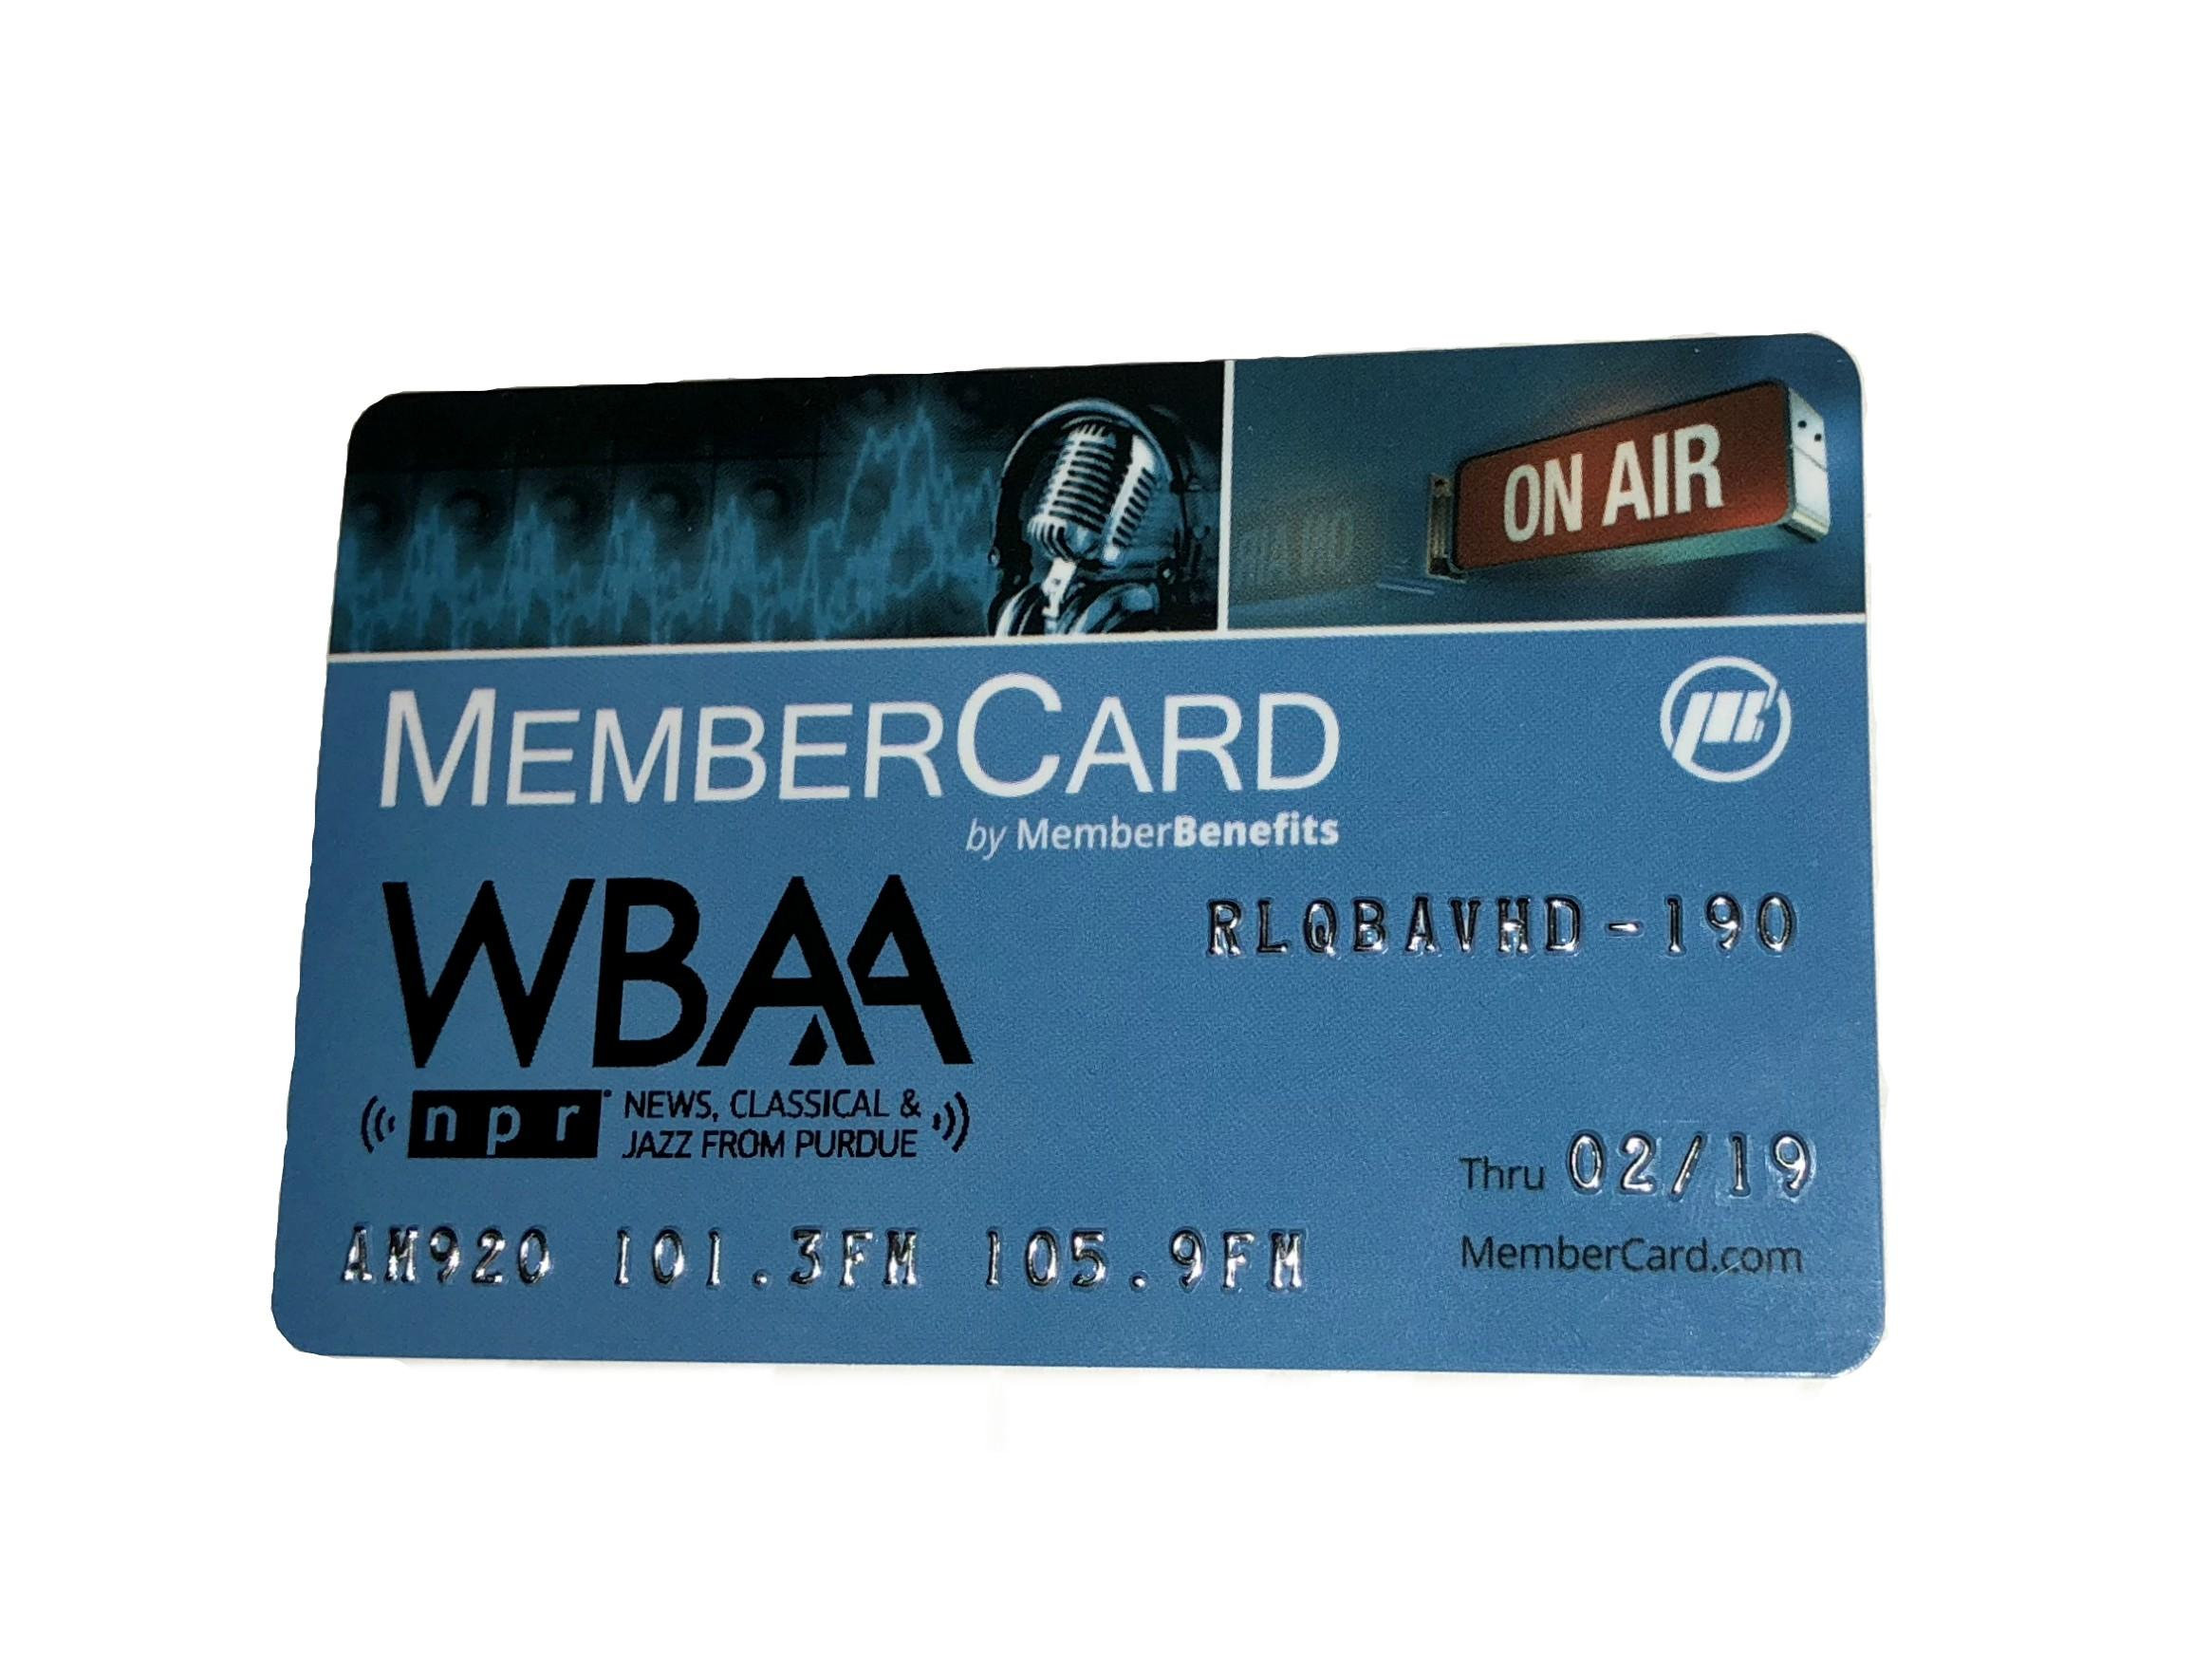 For those who give any gift amount of $120 or more ($10 monthly-or- $120 ), they will receive the WBAA MemberCard.